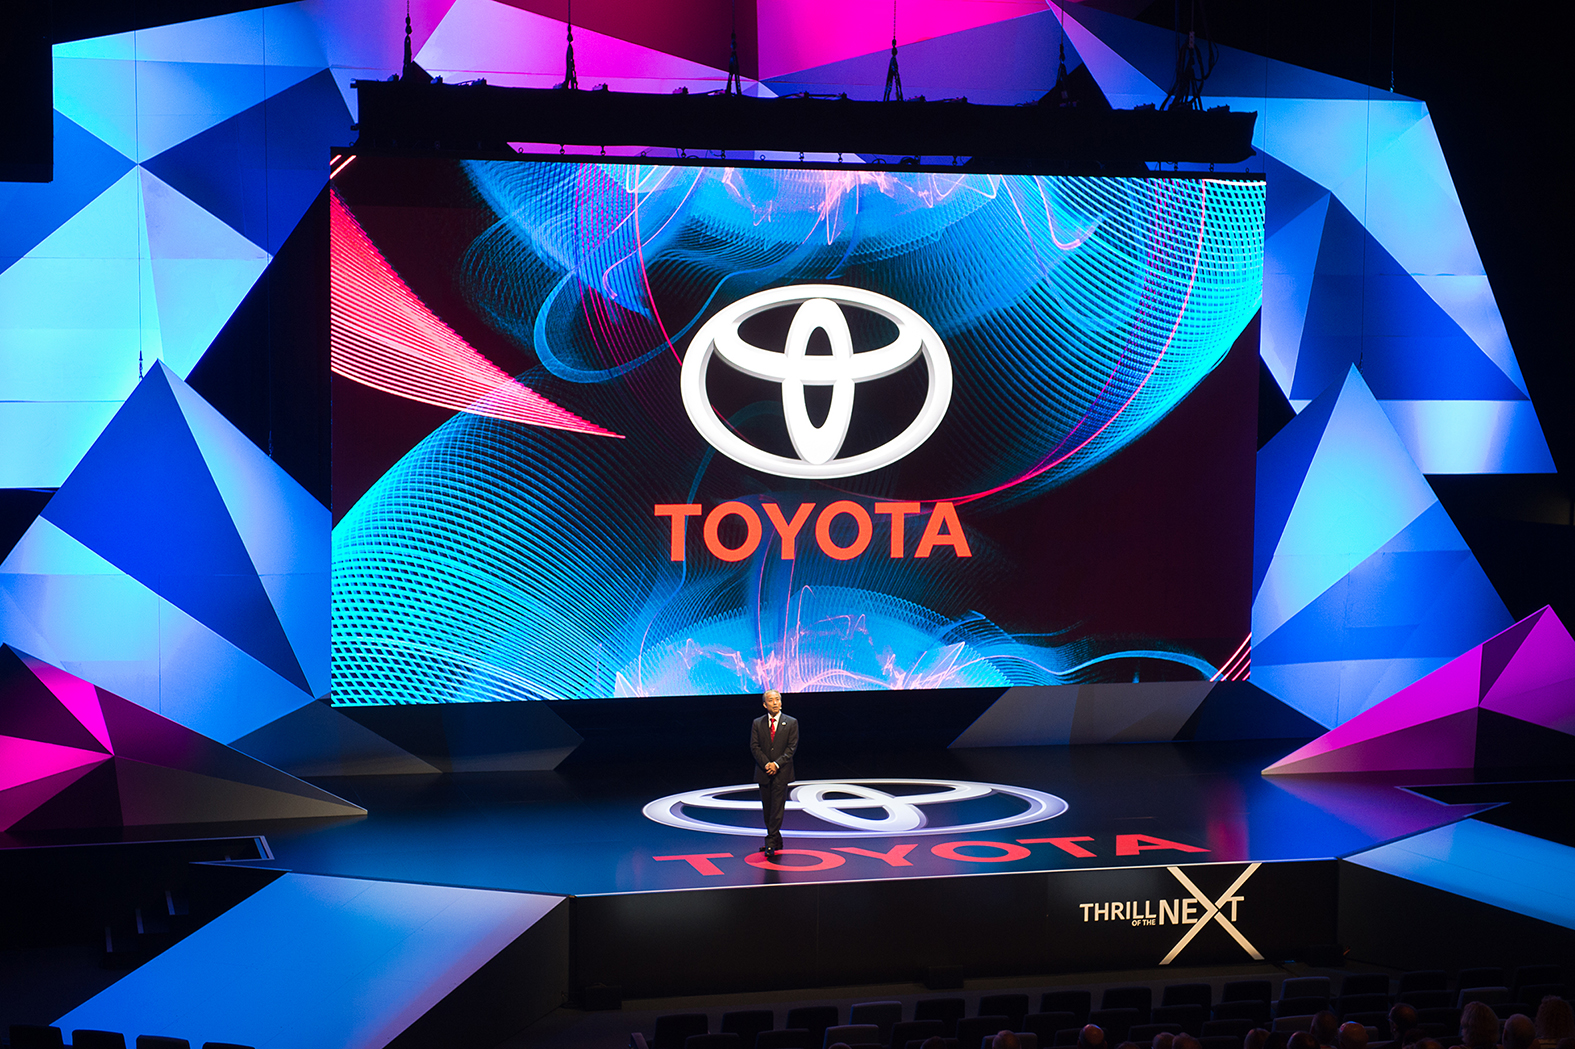 TOYOTA NDM Keynote Stage design